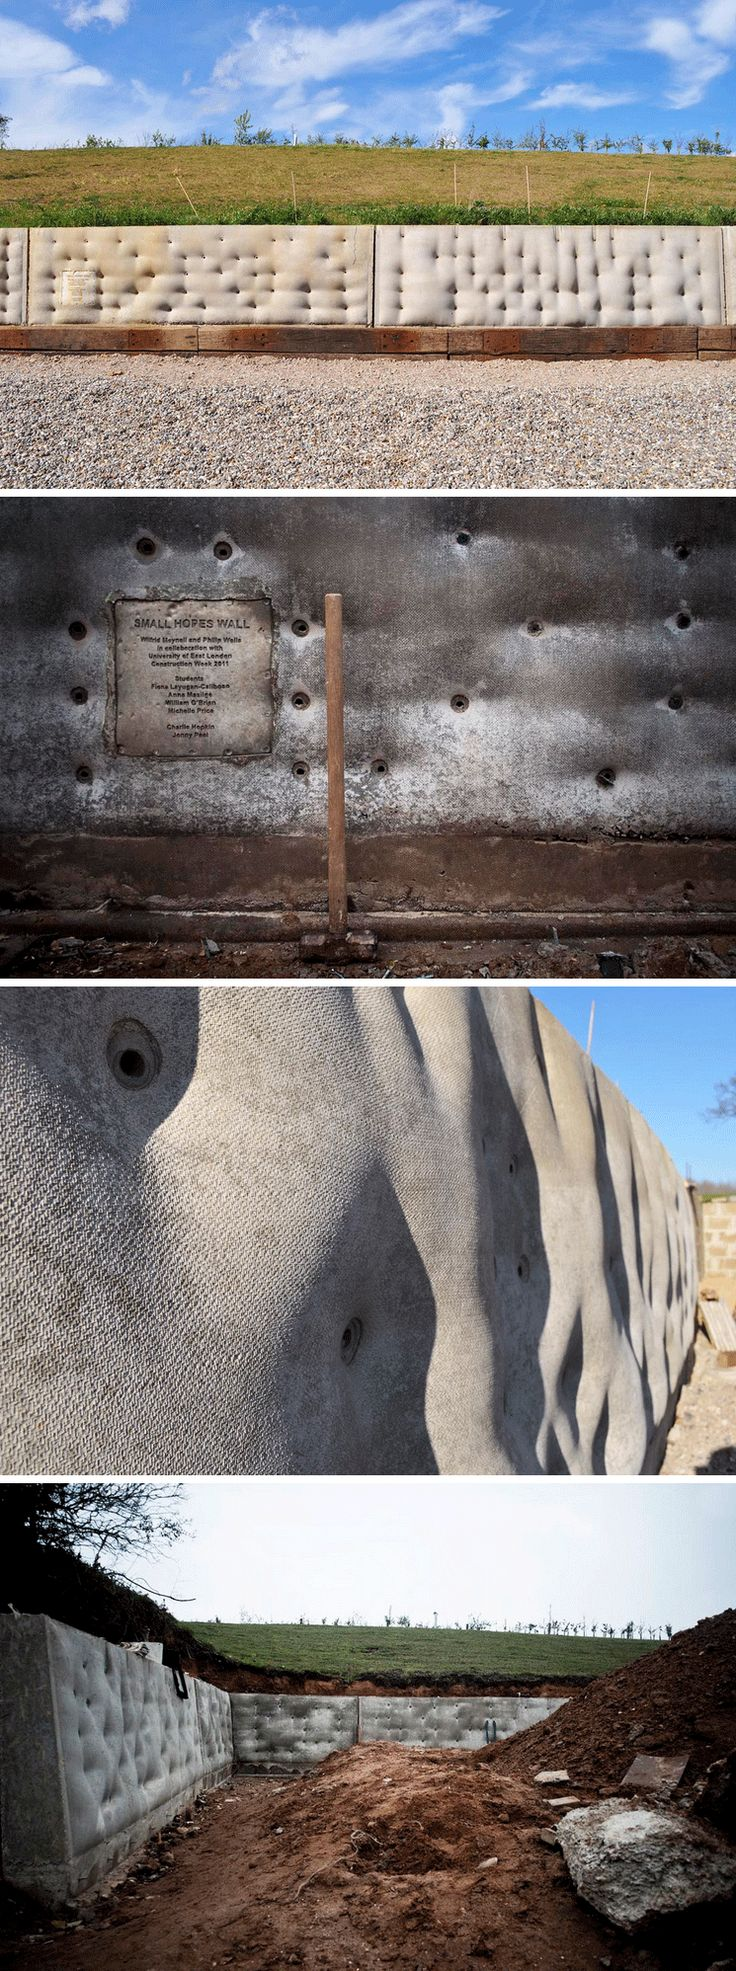 """This is the UK's longest """"fabric formwork wall"""" at 31.7 meters. It is made up of 7 casts (each weighing around 6 tons). This retaining wall was designed by Wilf Meynell created with support from the University of East London. #concrete #texture #fabric"""